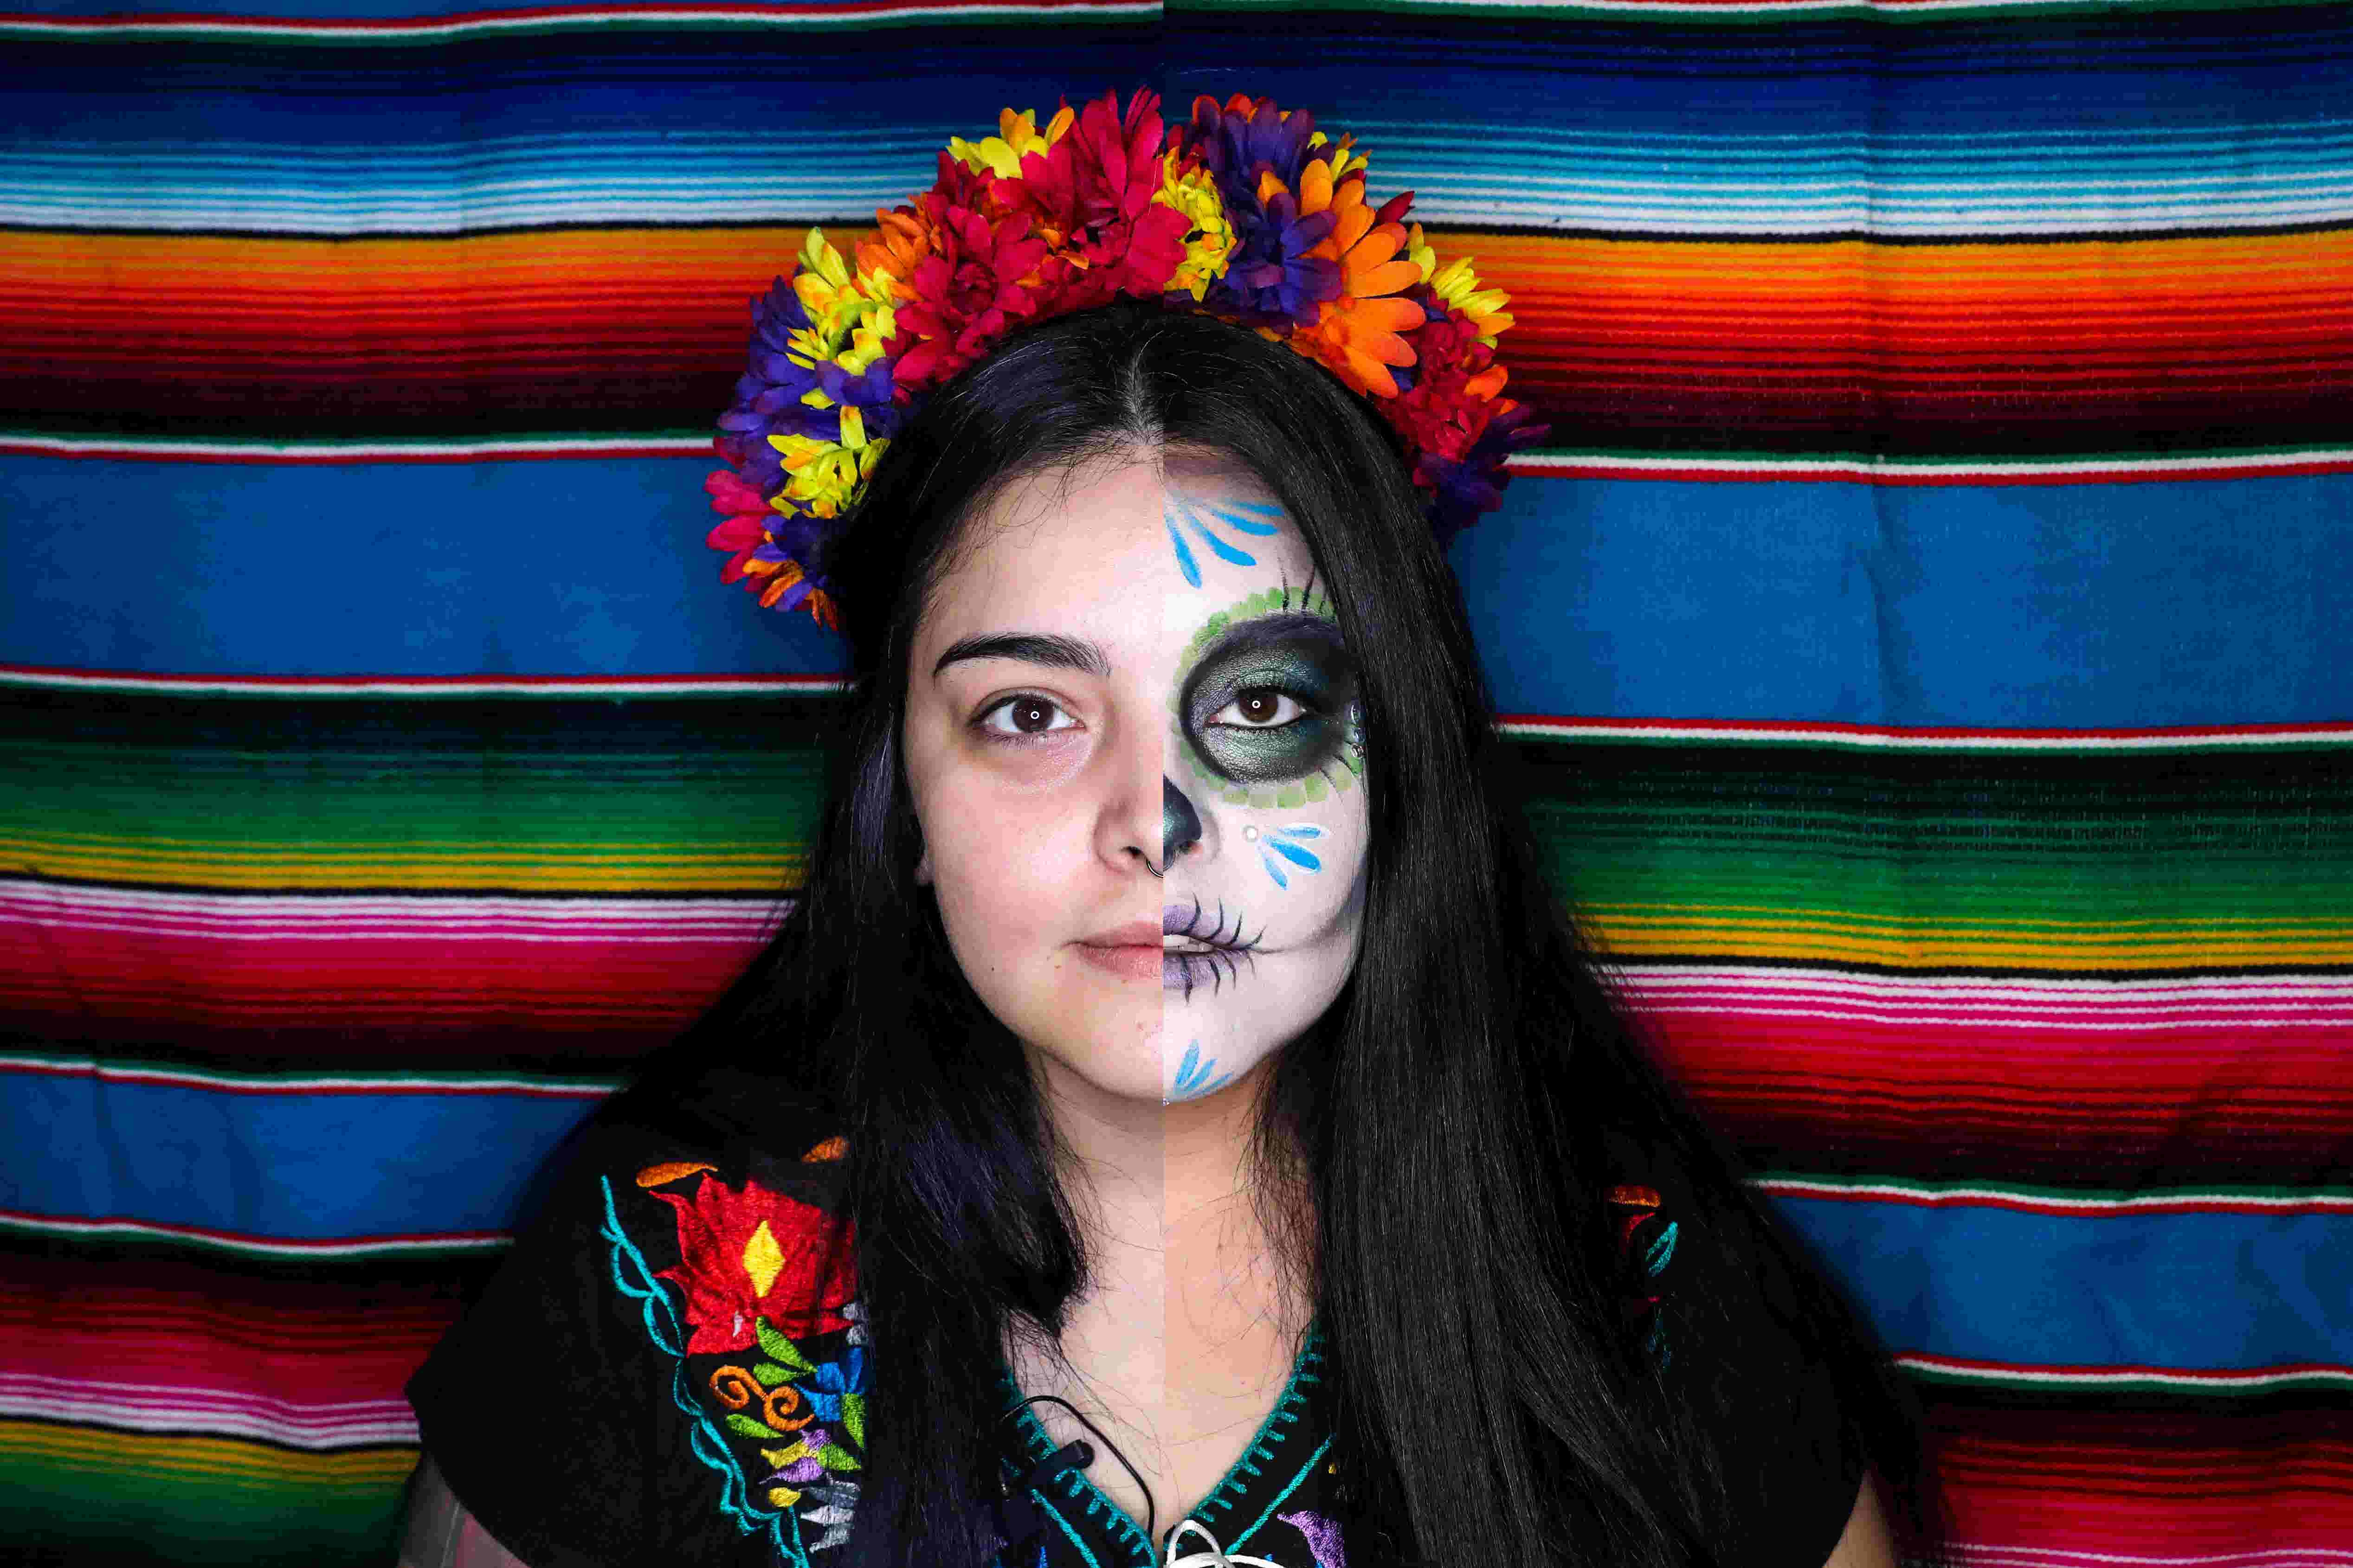 Día de los Muertos rooted in tradition; 'It's not Halloween for Mexicans'